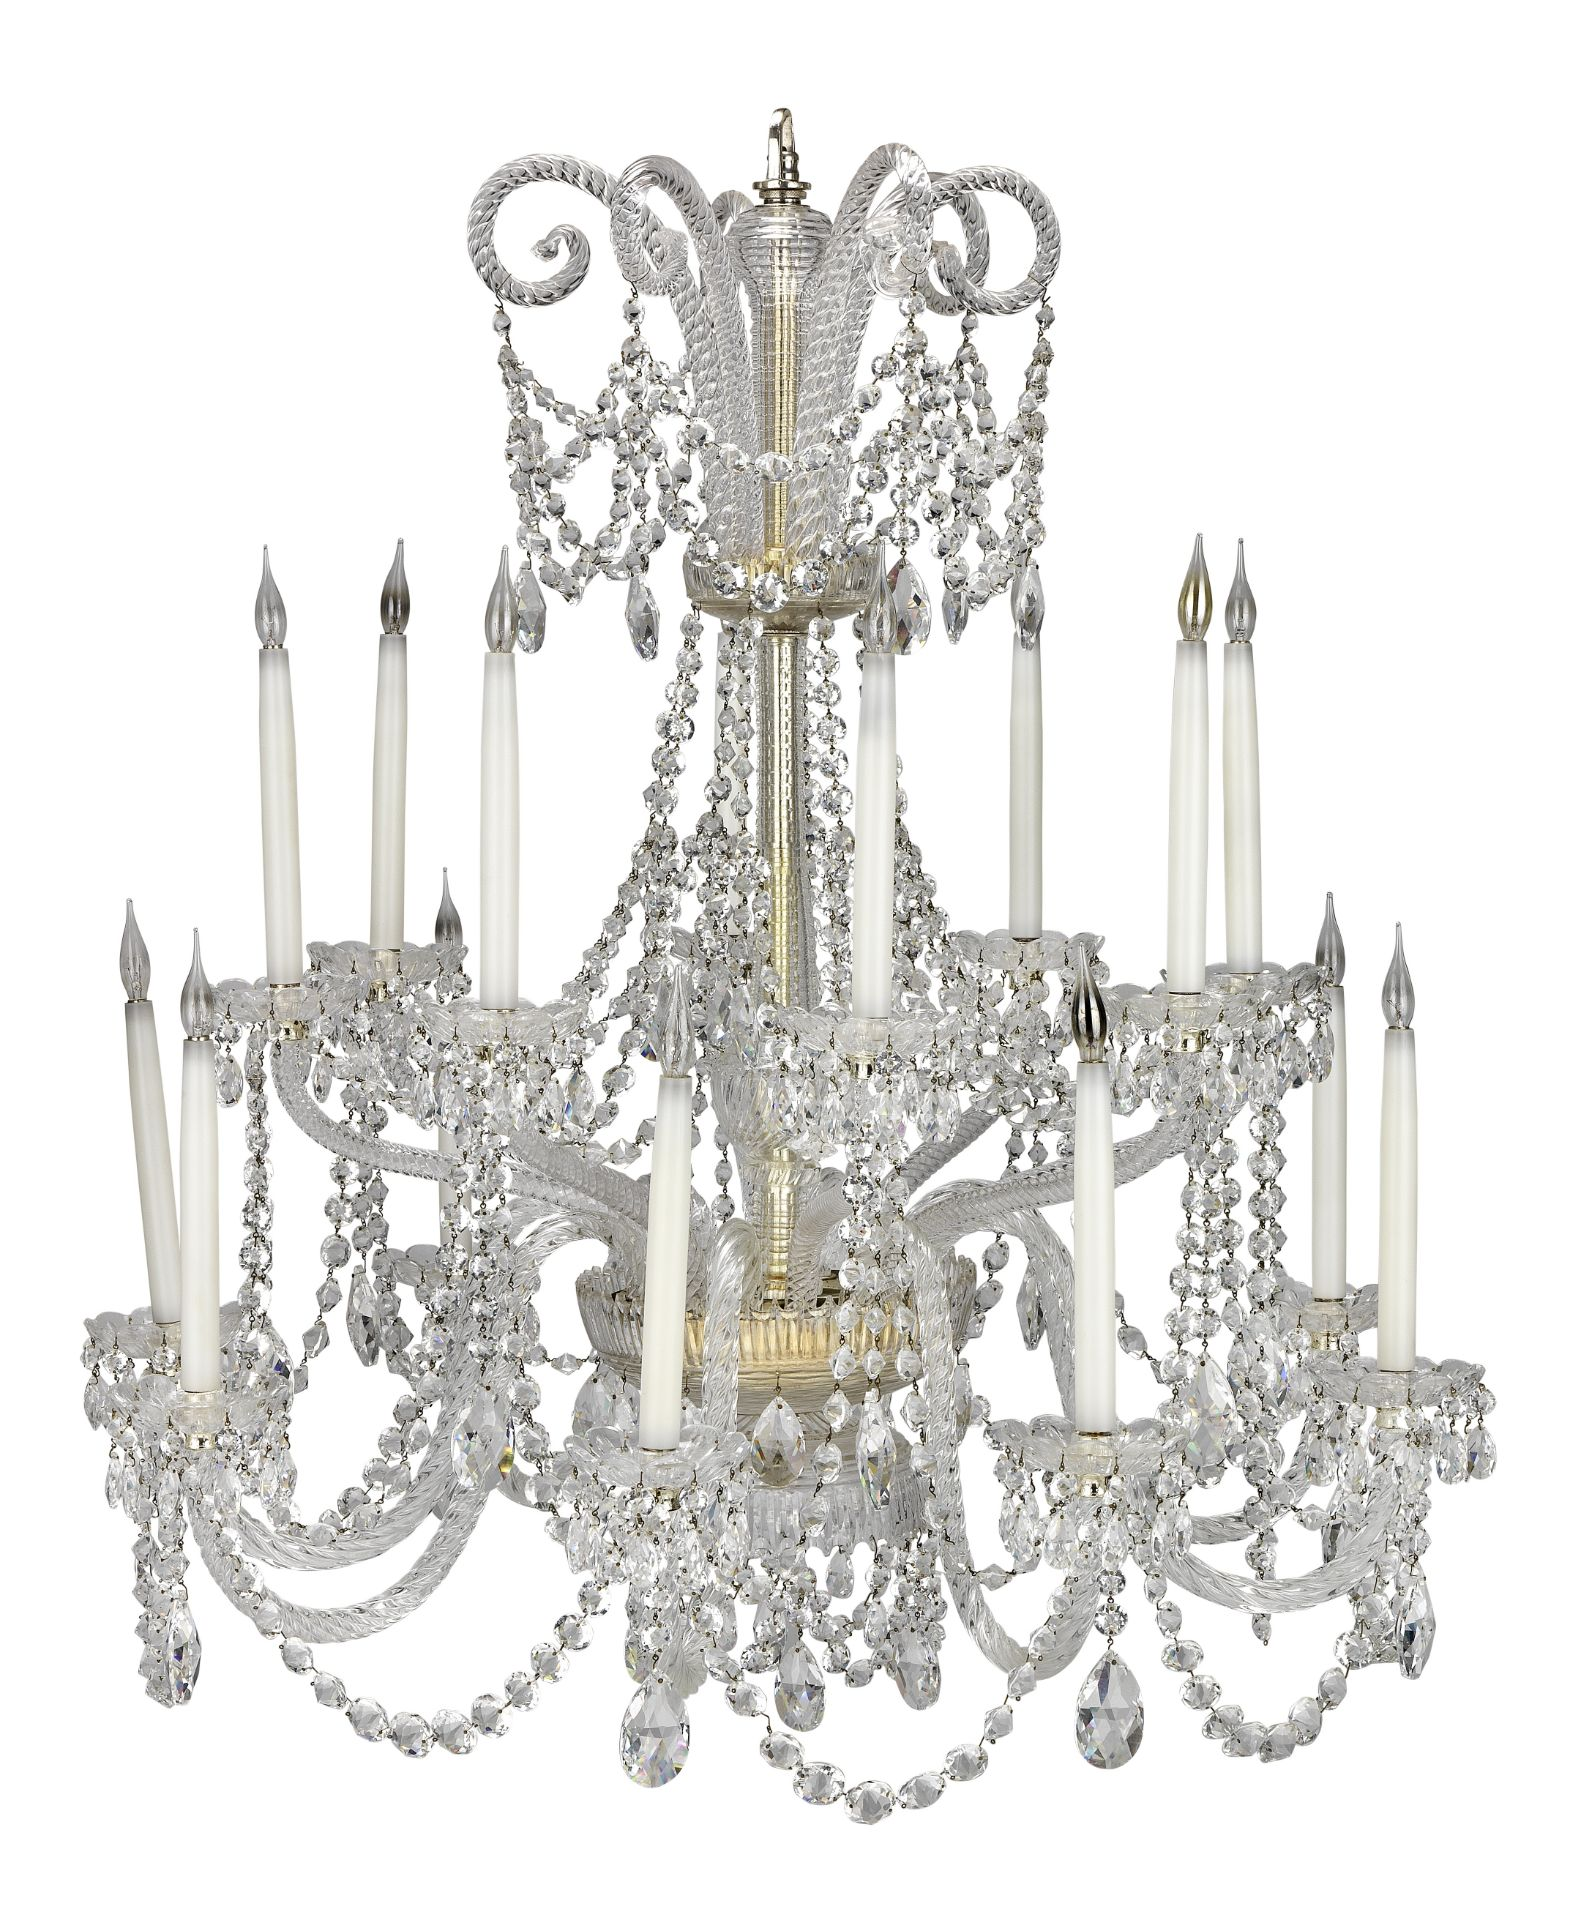 Los 122 - A cut glass sixteen light chandelier